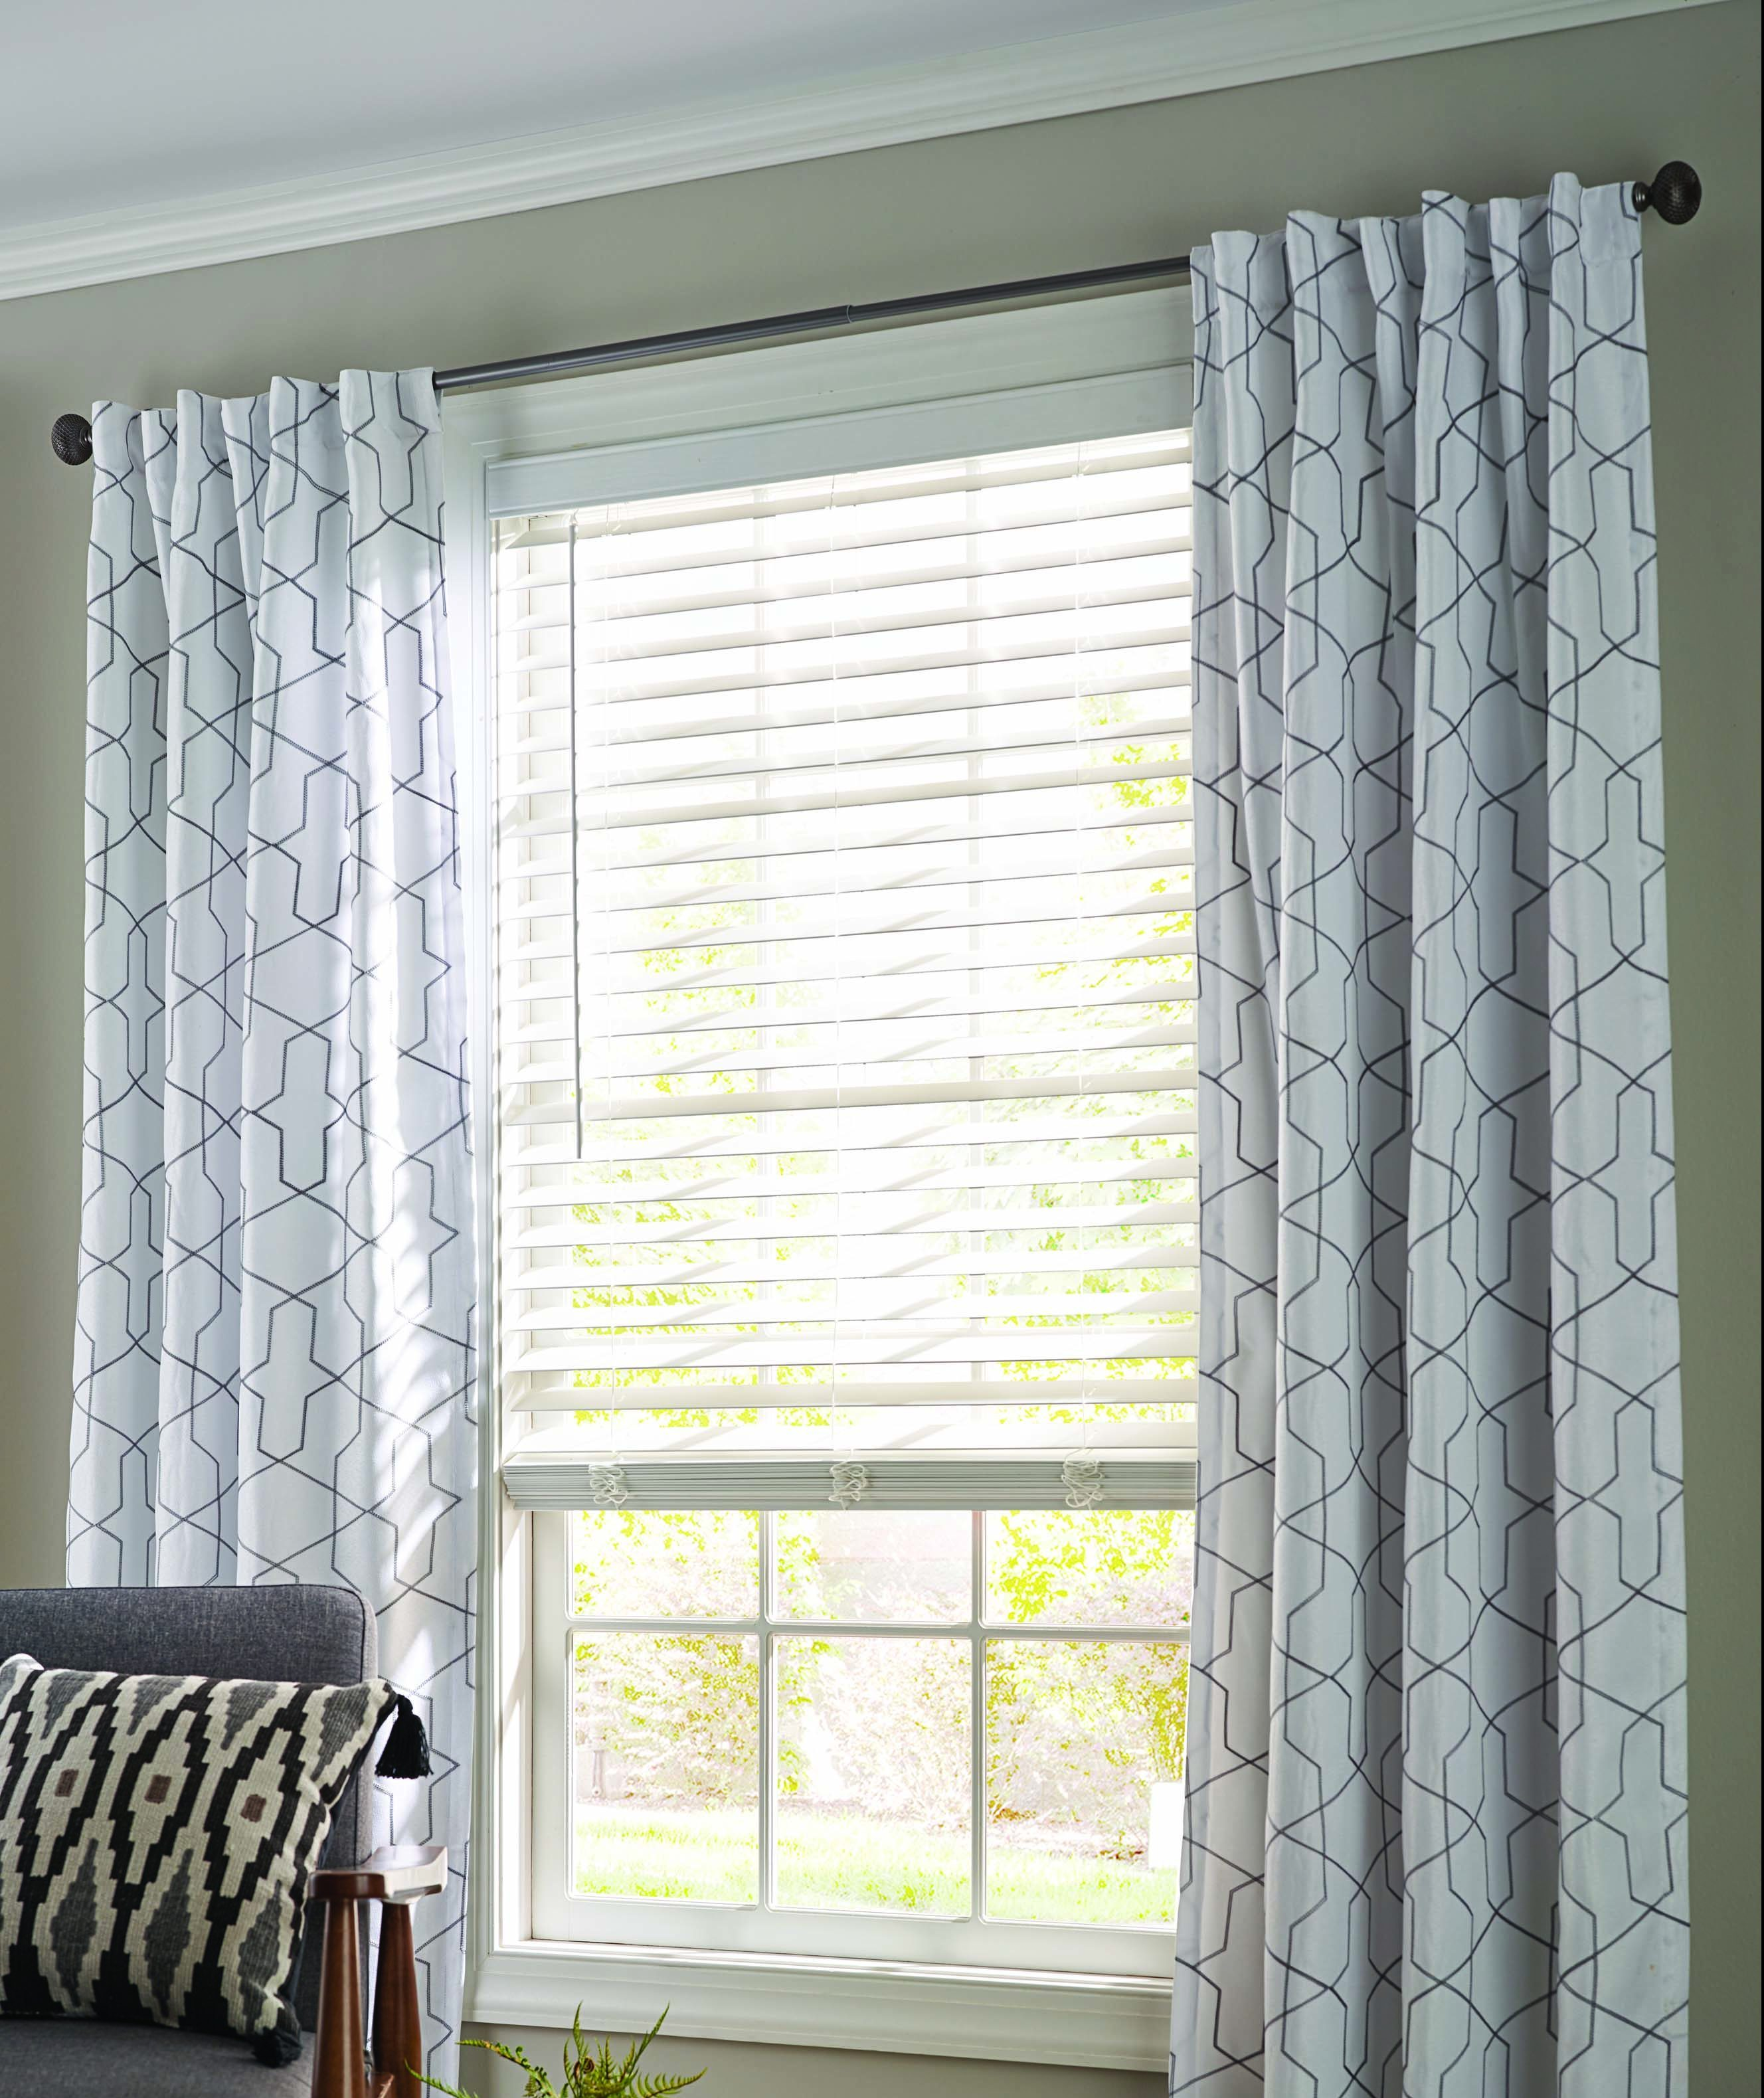 Faux Wood Blinds and Drapes